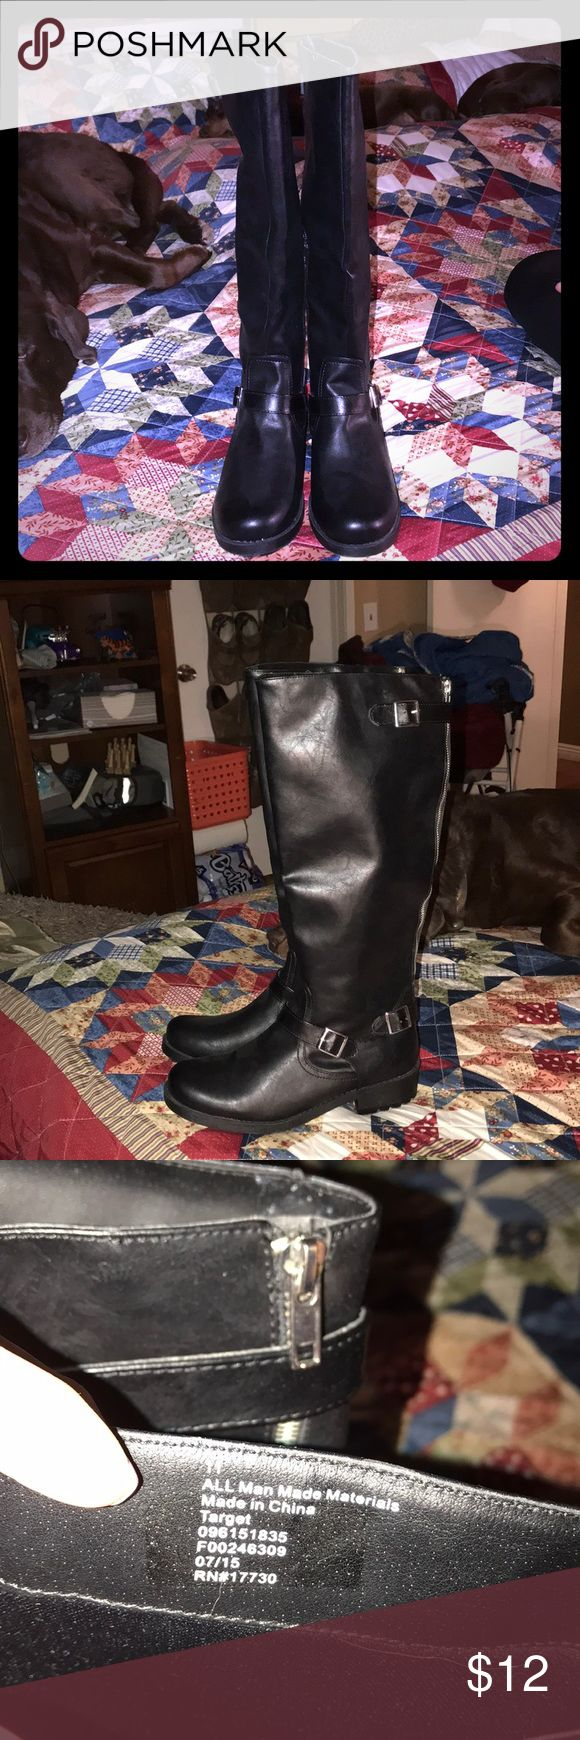 NWOT Target Boots Black W11 Brand NEW NEVER WORN Target boots black size 11✳️ZIPPER IN BACK IS FOR LOOKS NOT FUNCTIONAL...ZIPS ON INSIDE OF CALF✳️ target Shoes